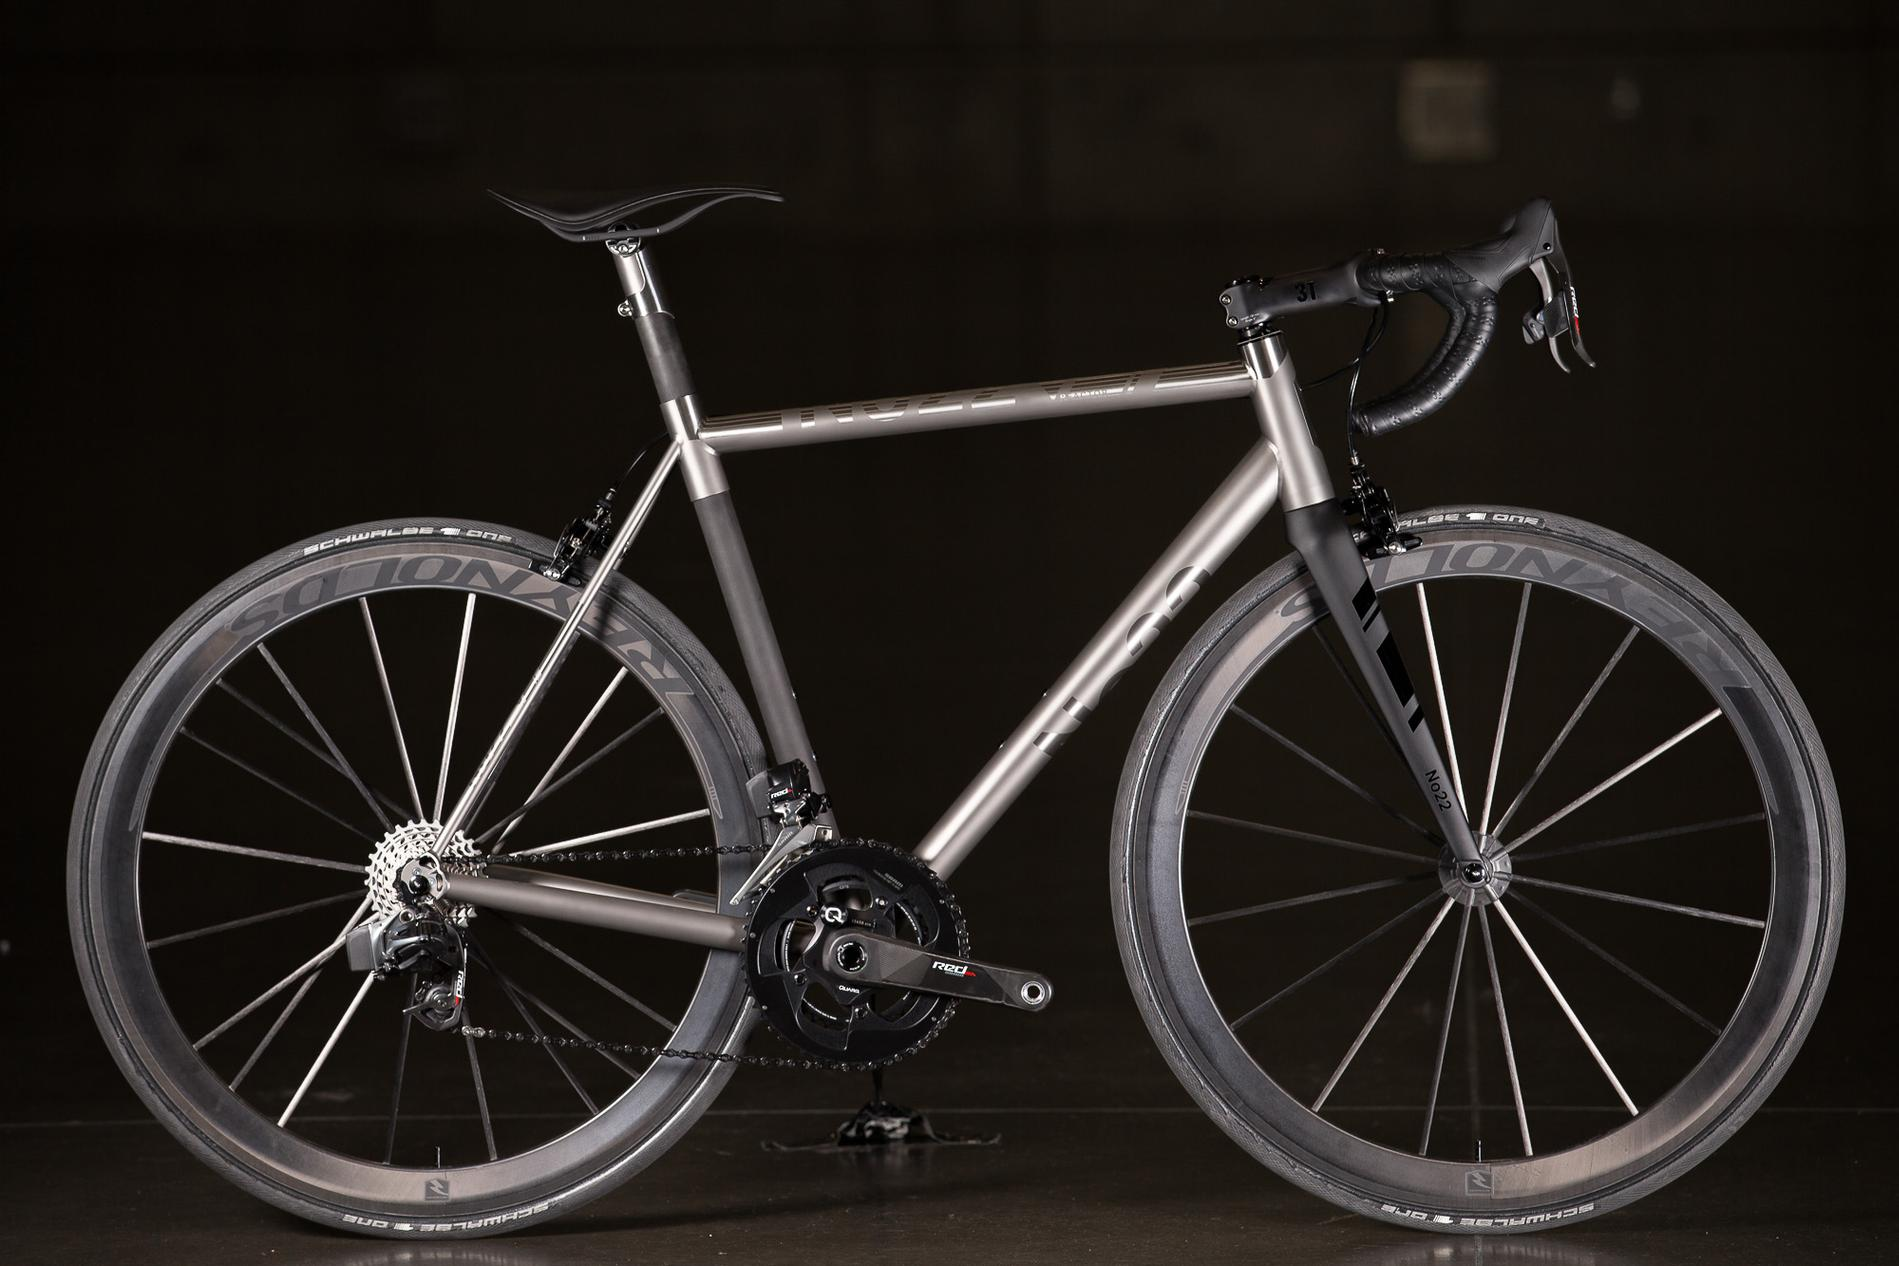 2016 NAHBS: No22 Reactor Carbon and Ti Road